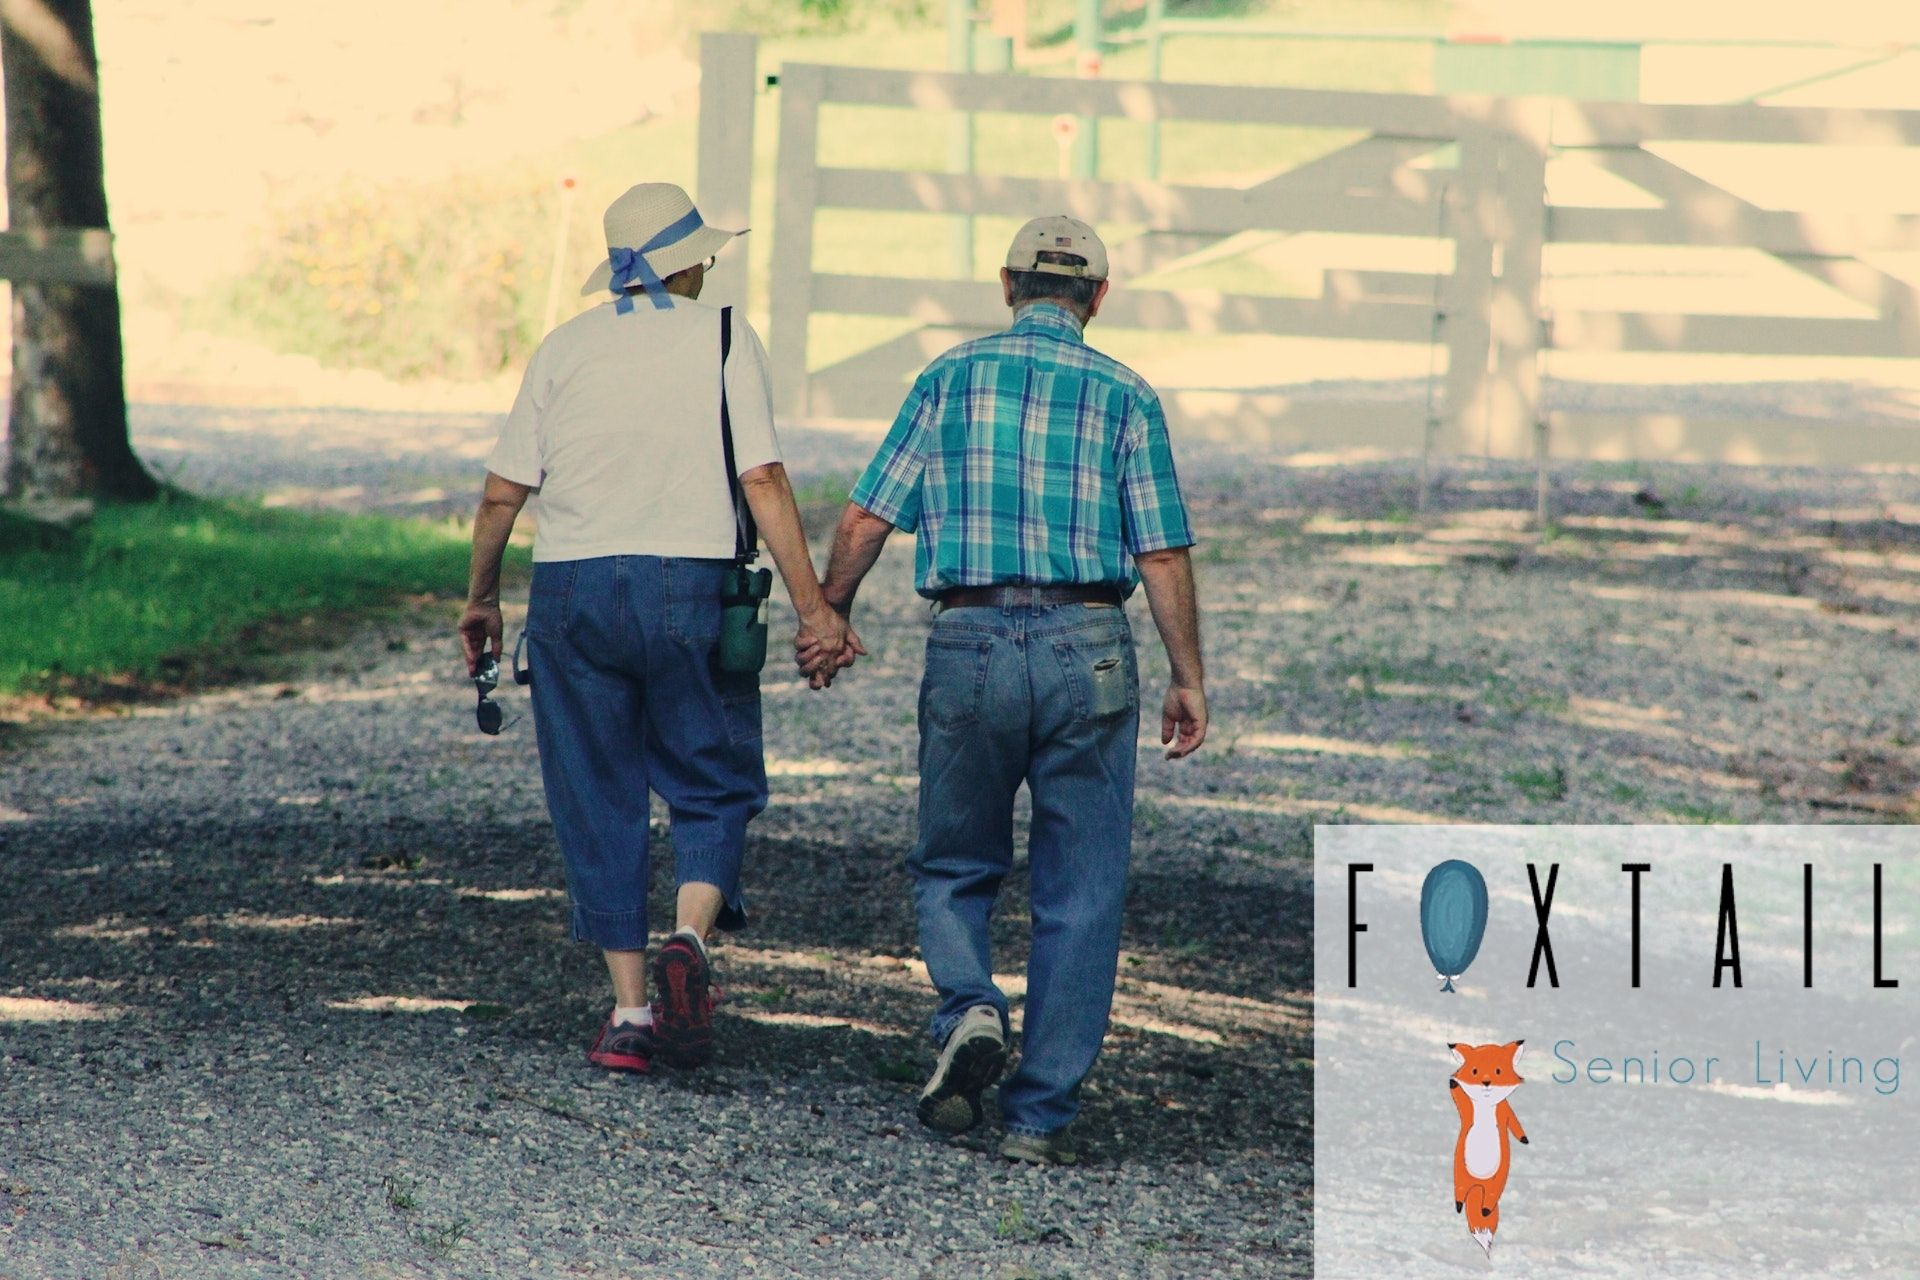 An older couple walking down a gravel road